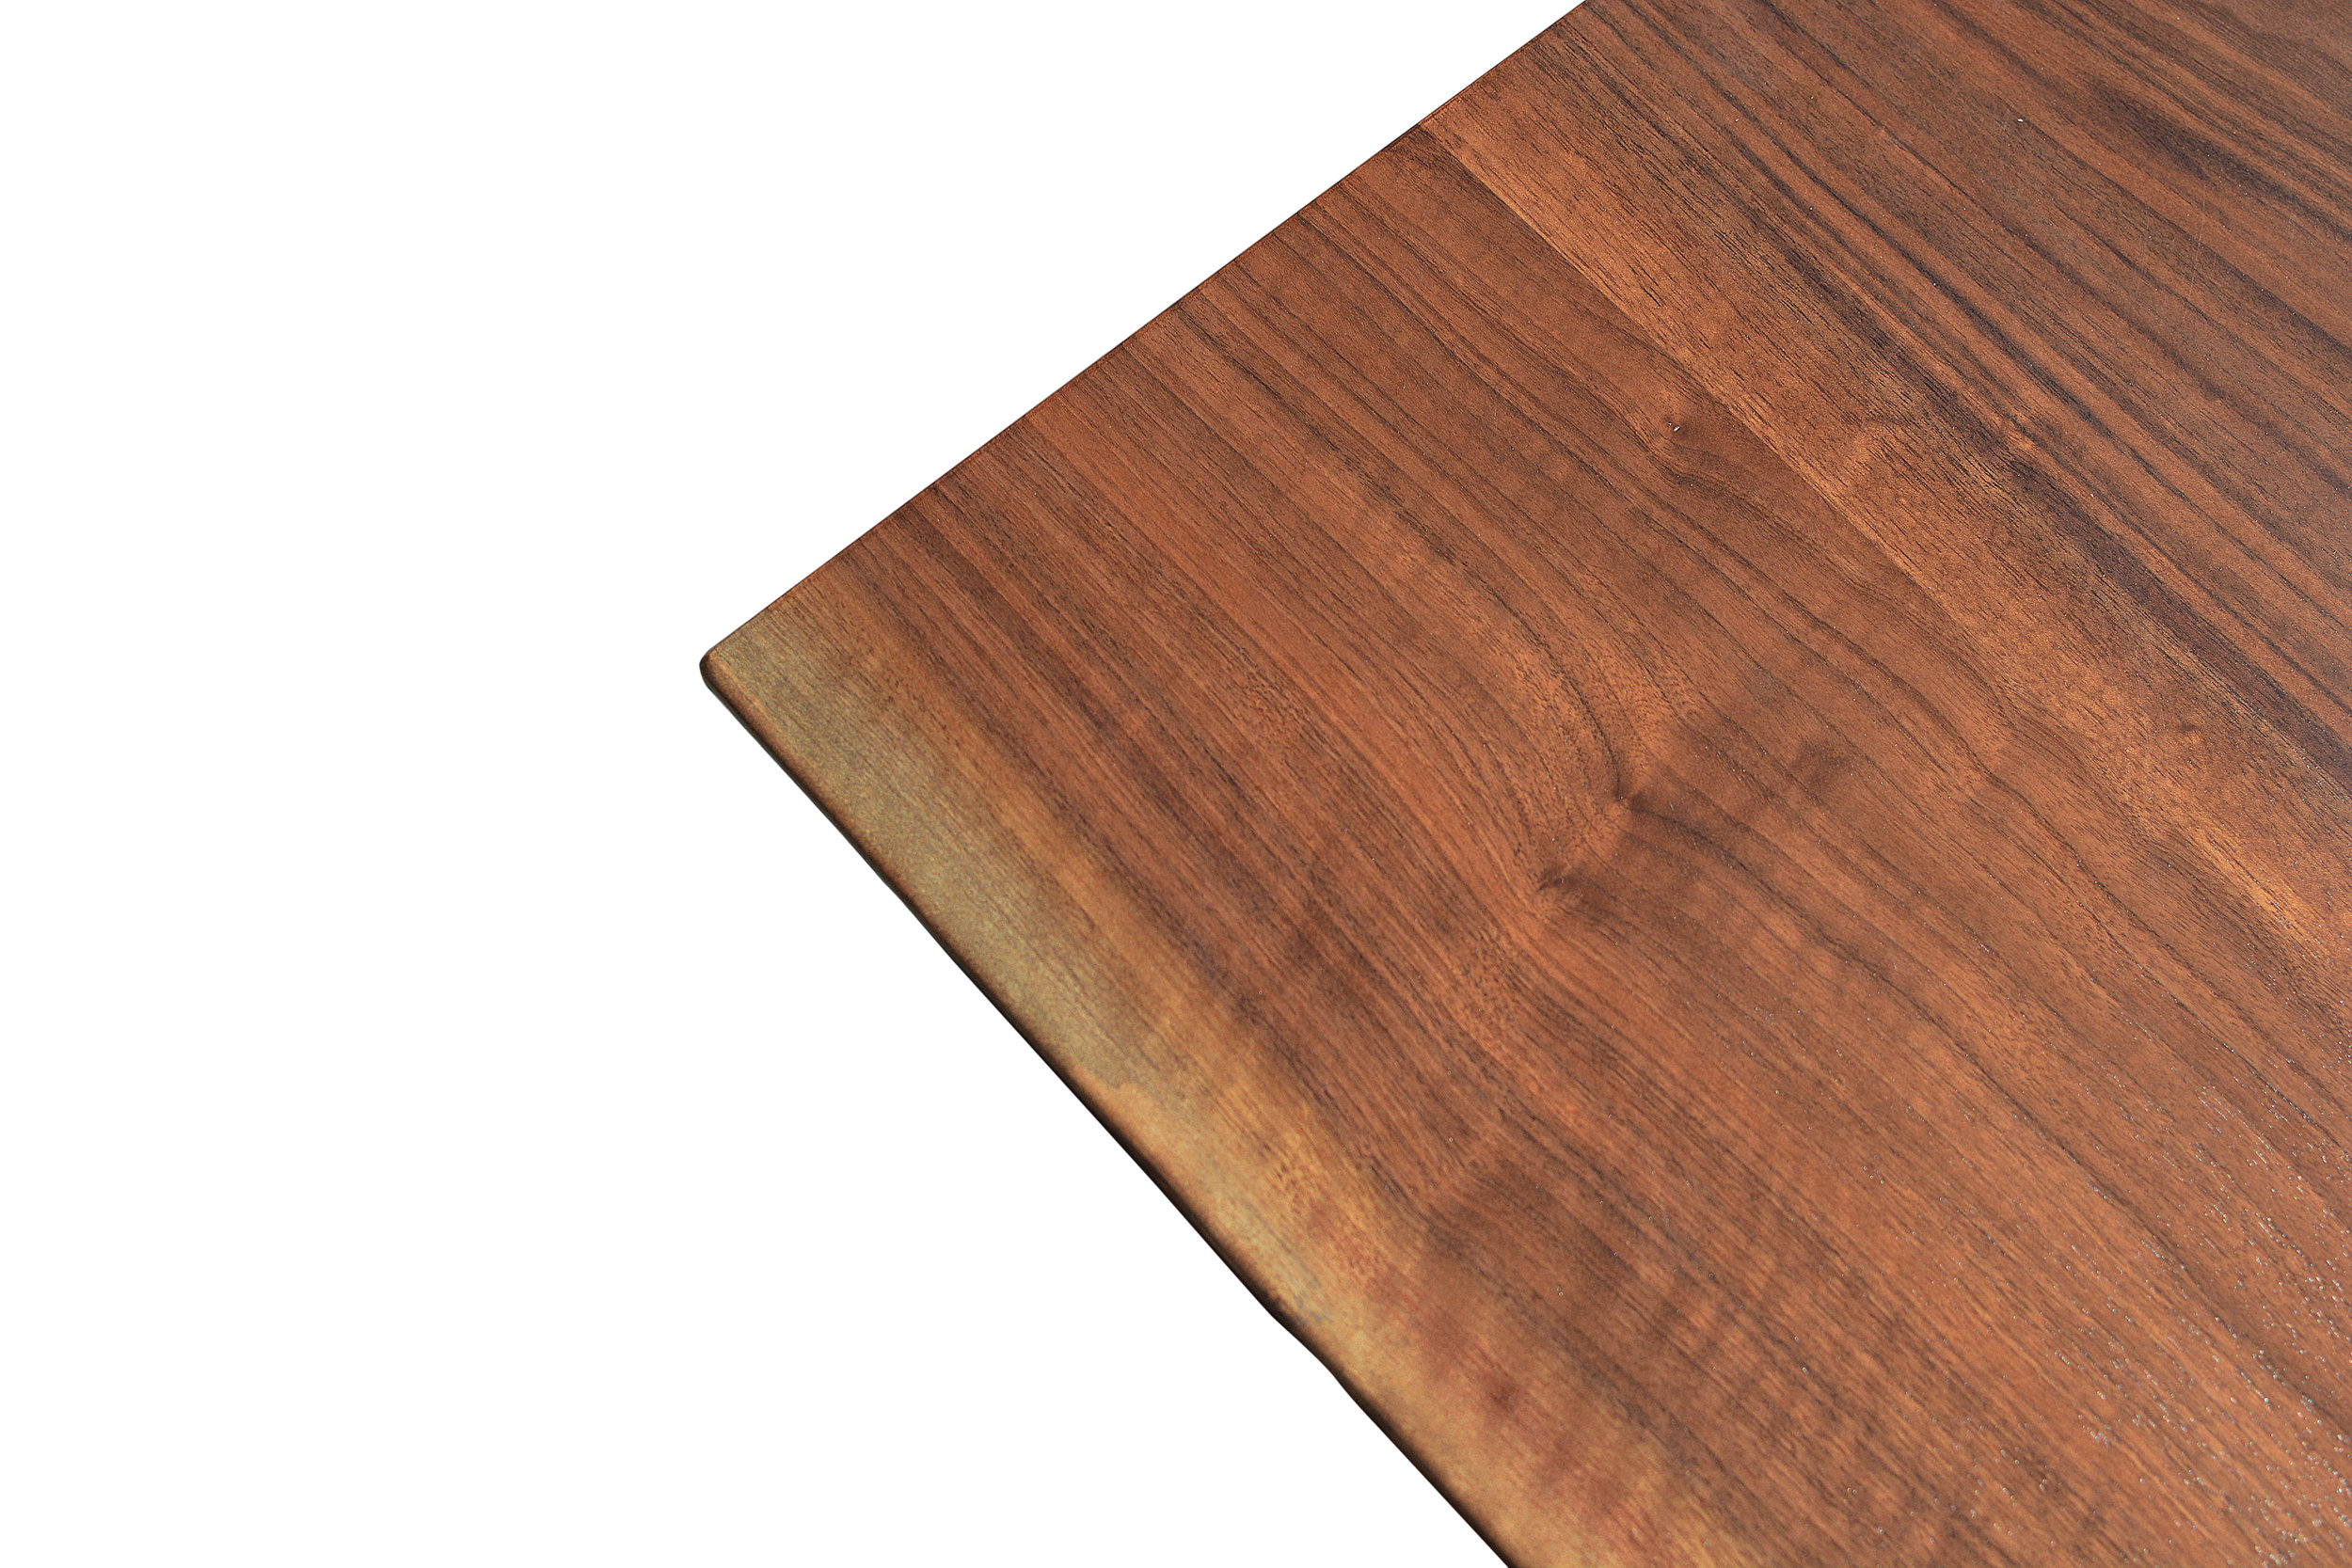 Etz & Steel Iris Live Edge Walnut Coffee Table Close Up 7.JPG